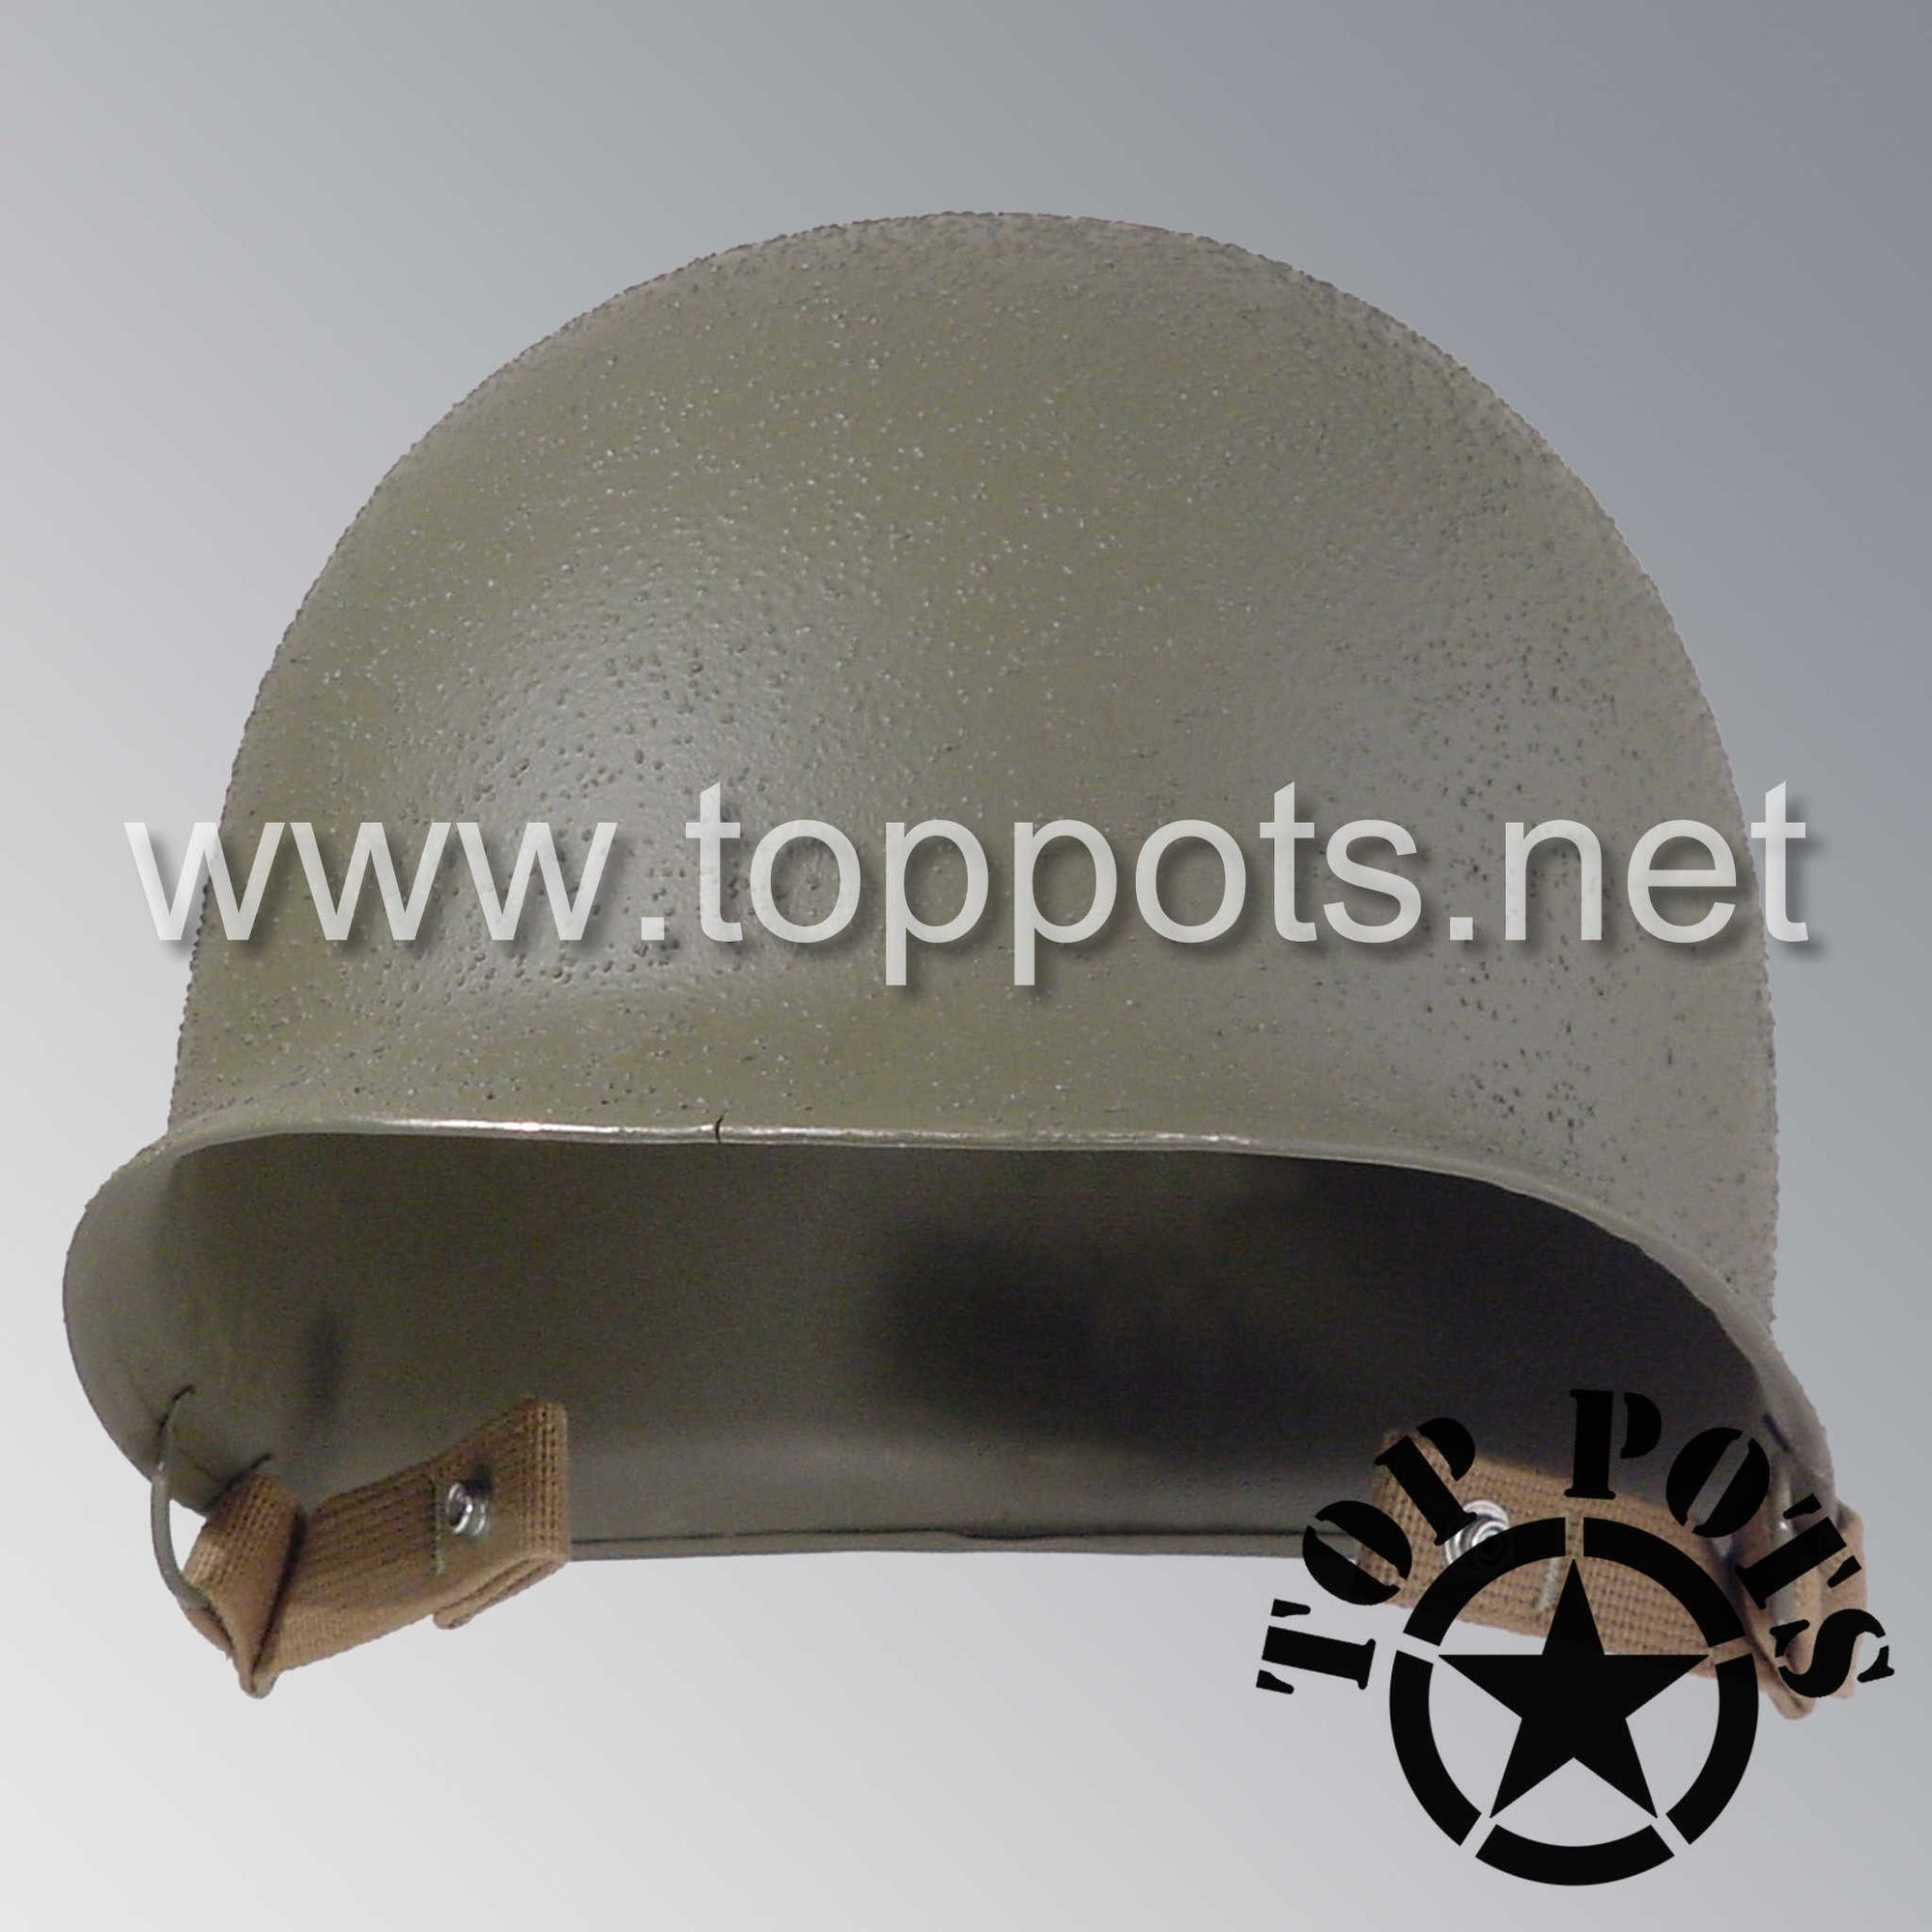 Image 1 of WWII US Army Restored Original M2 Paratrooper Airborne Helmet D Bale Shell with Chinstraps